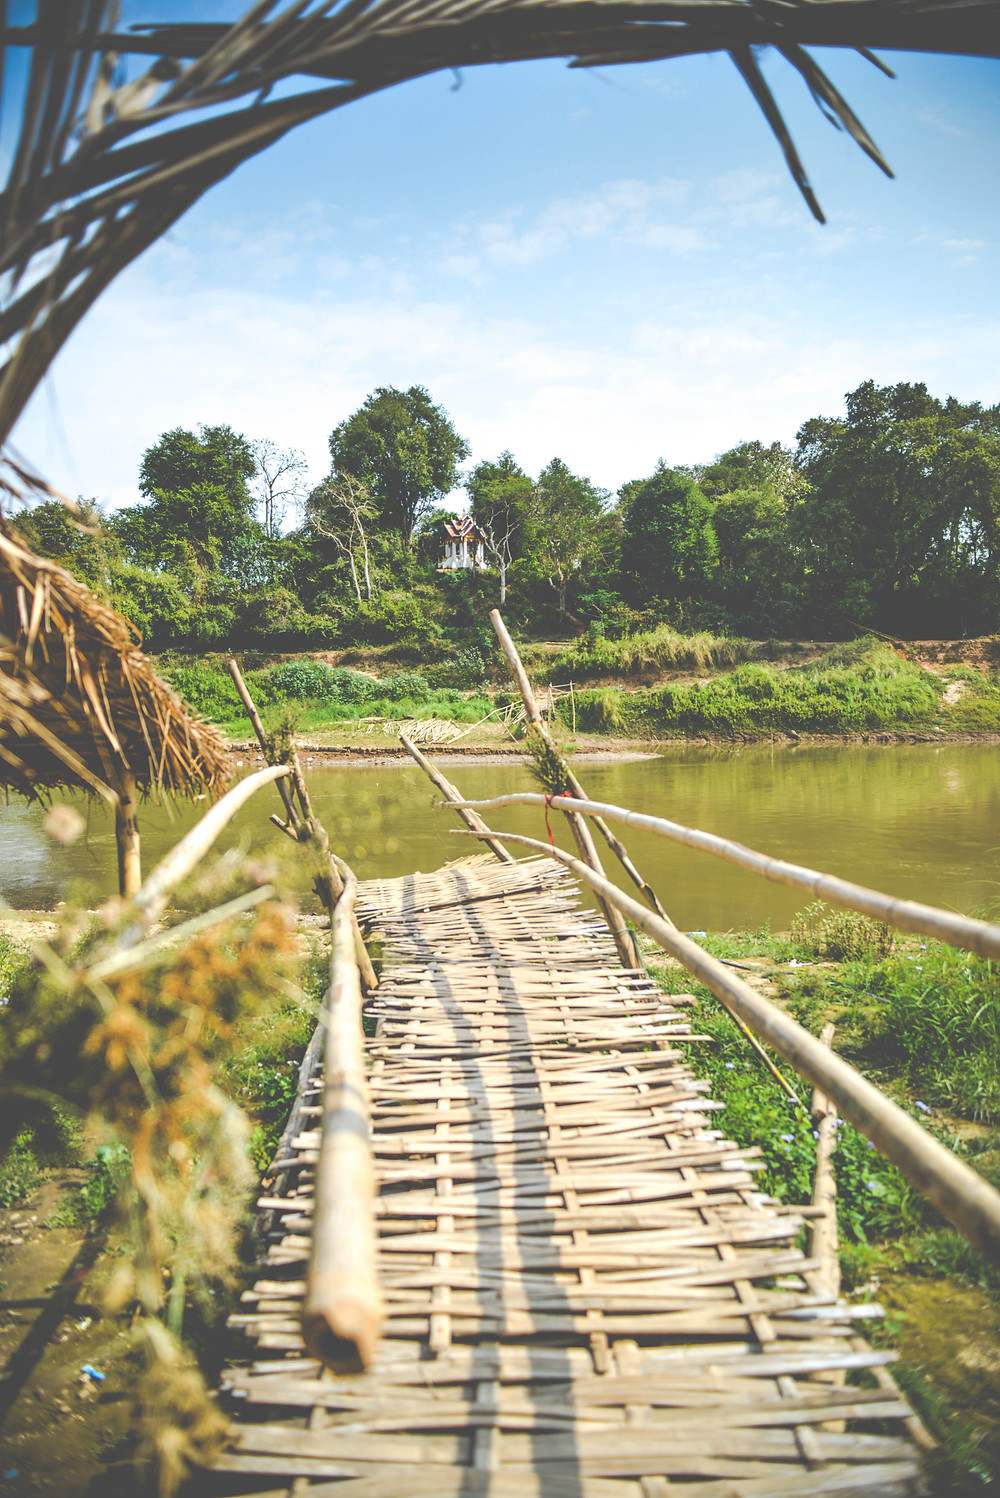 broken bridge in the north part of Luang Prabang during the dry season in